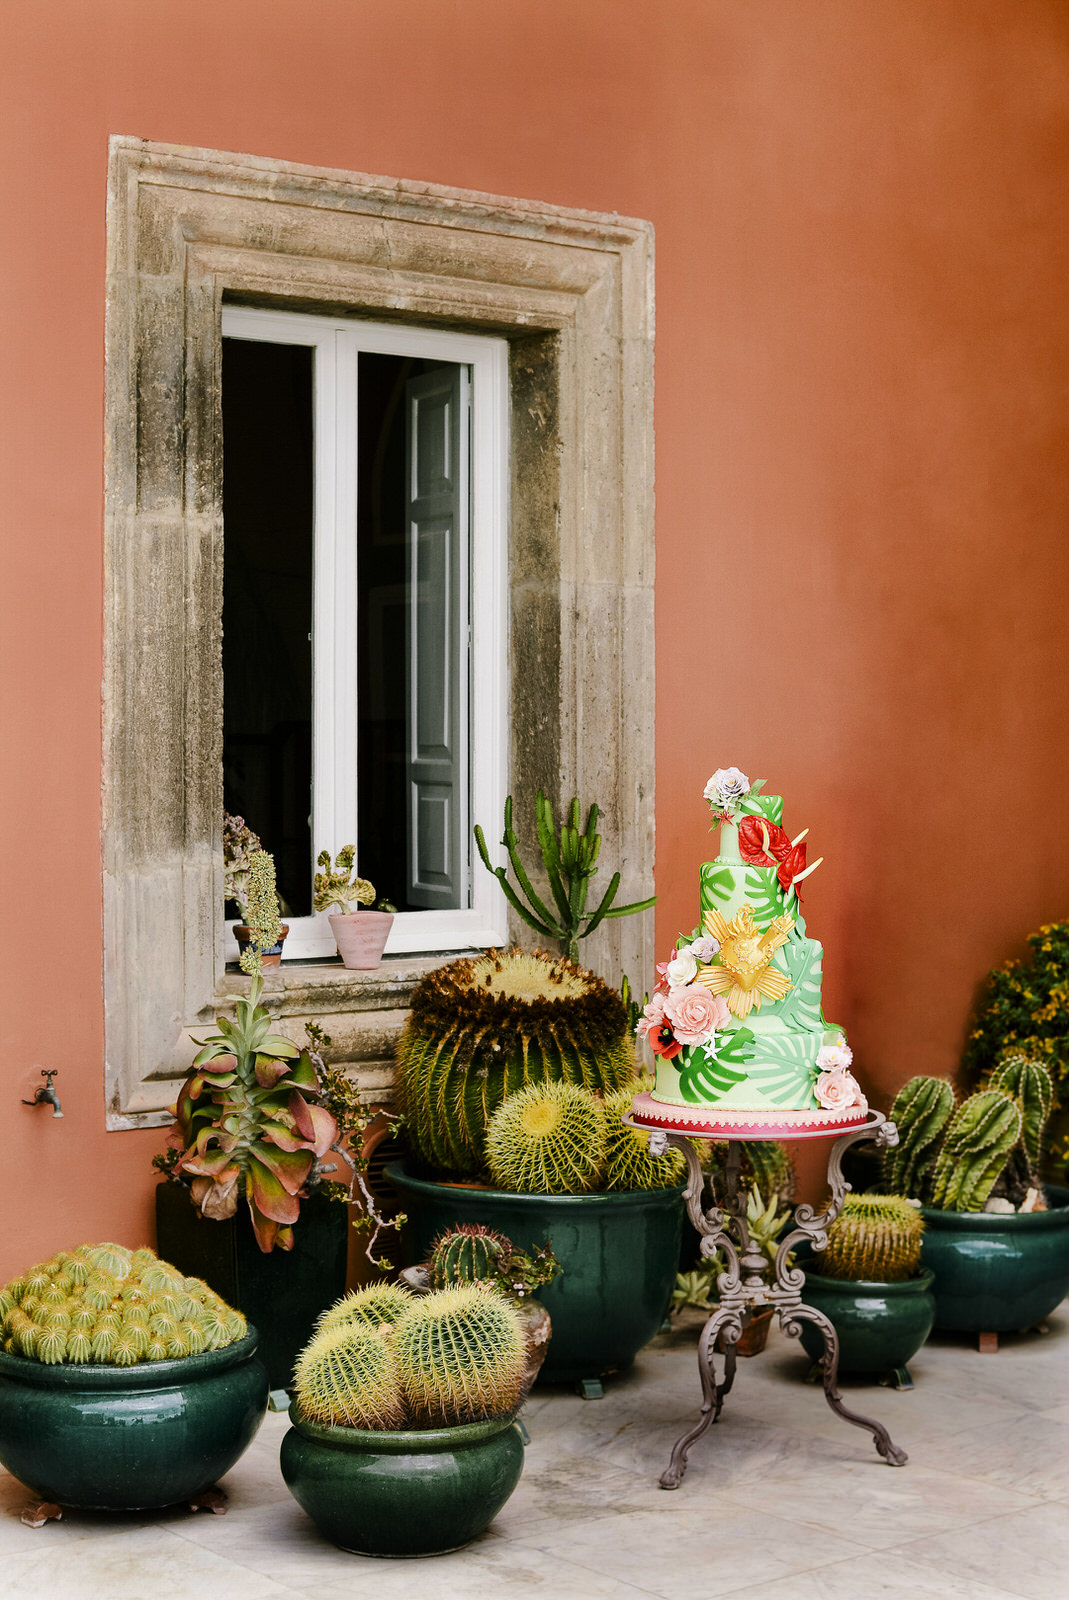 frida inspired wedding cake among cactus